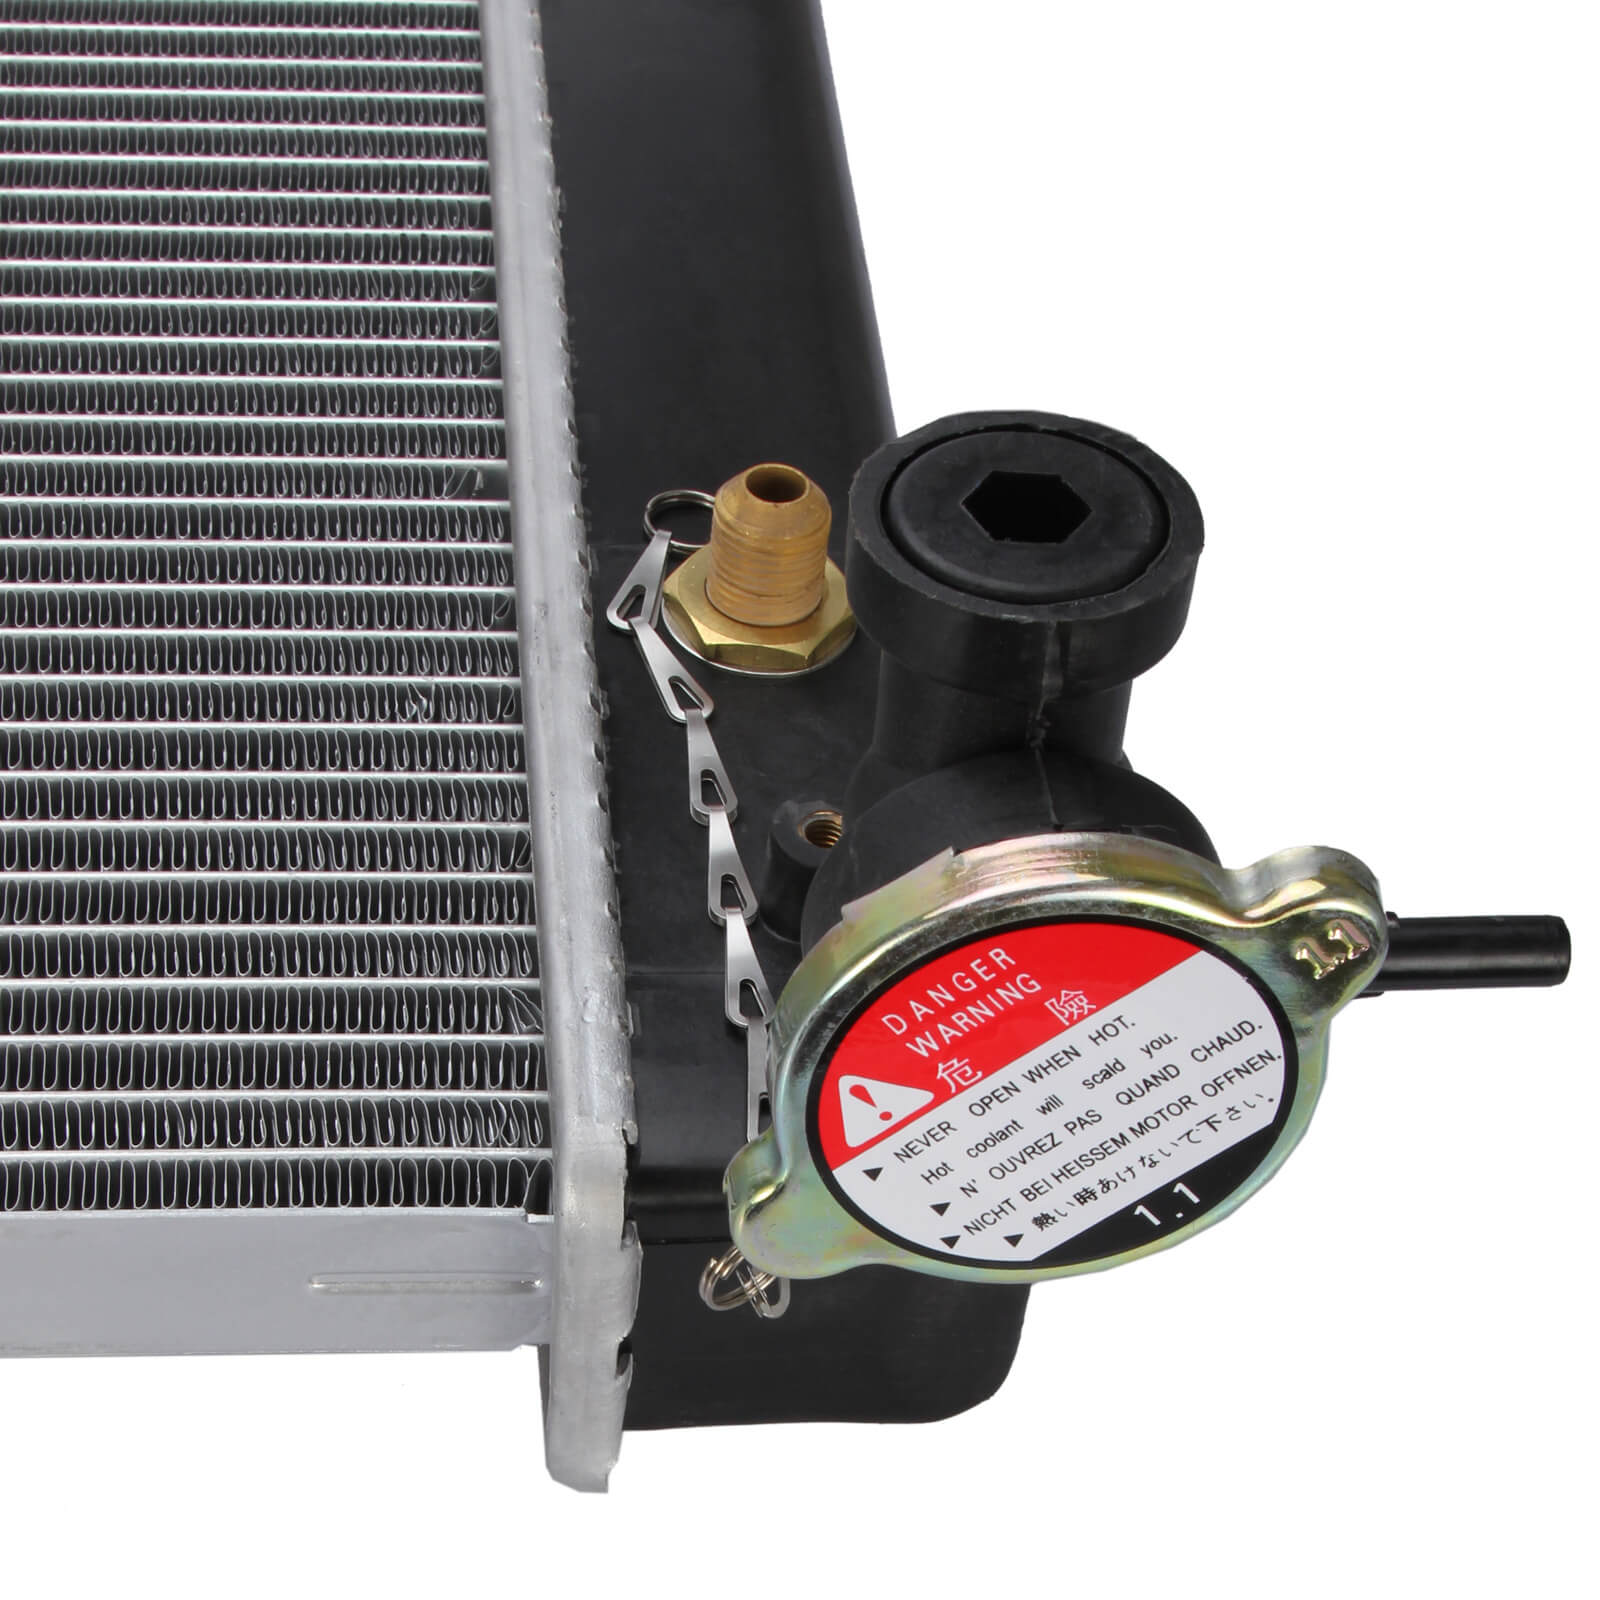 Wholesale ls1 holden radiators for sale vy Dromedary Brand